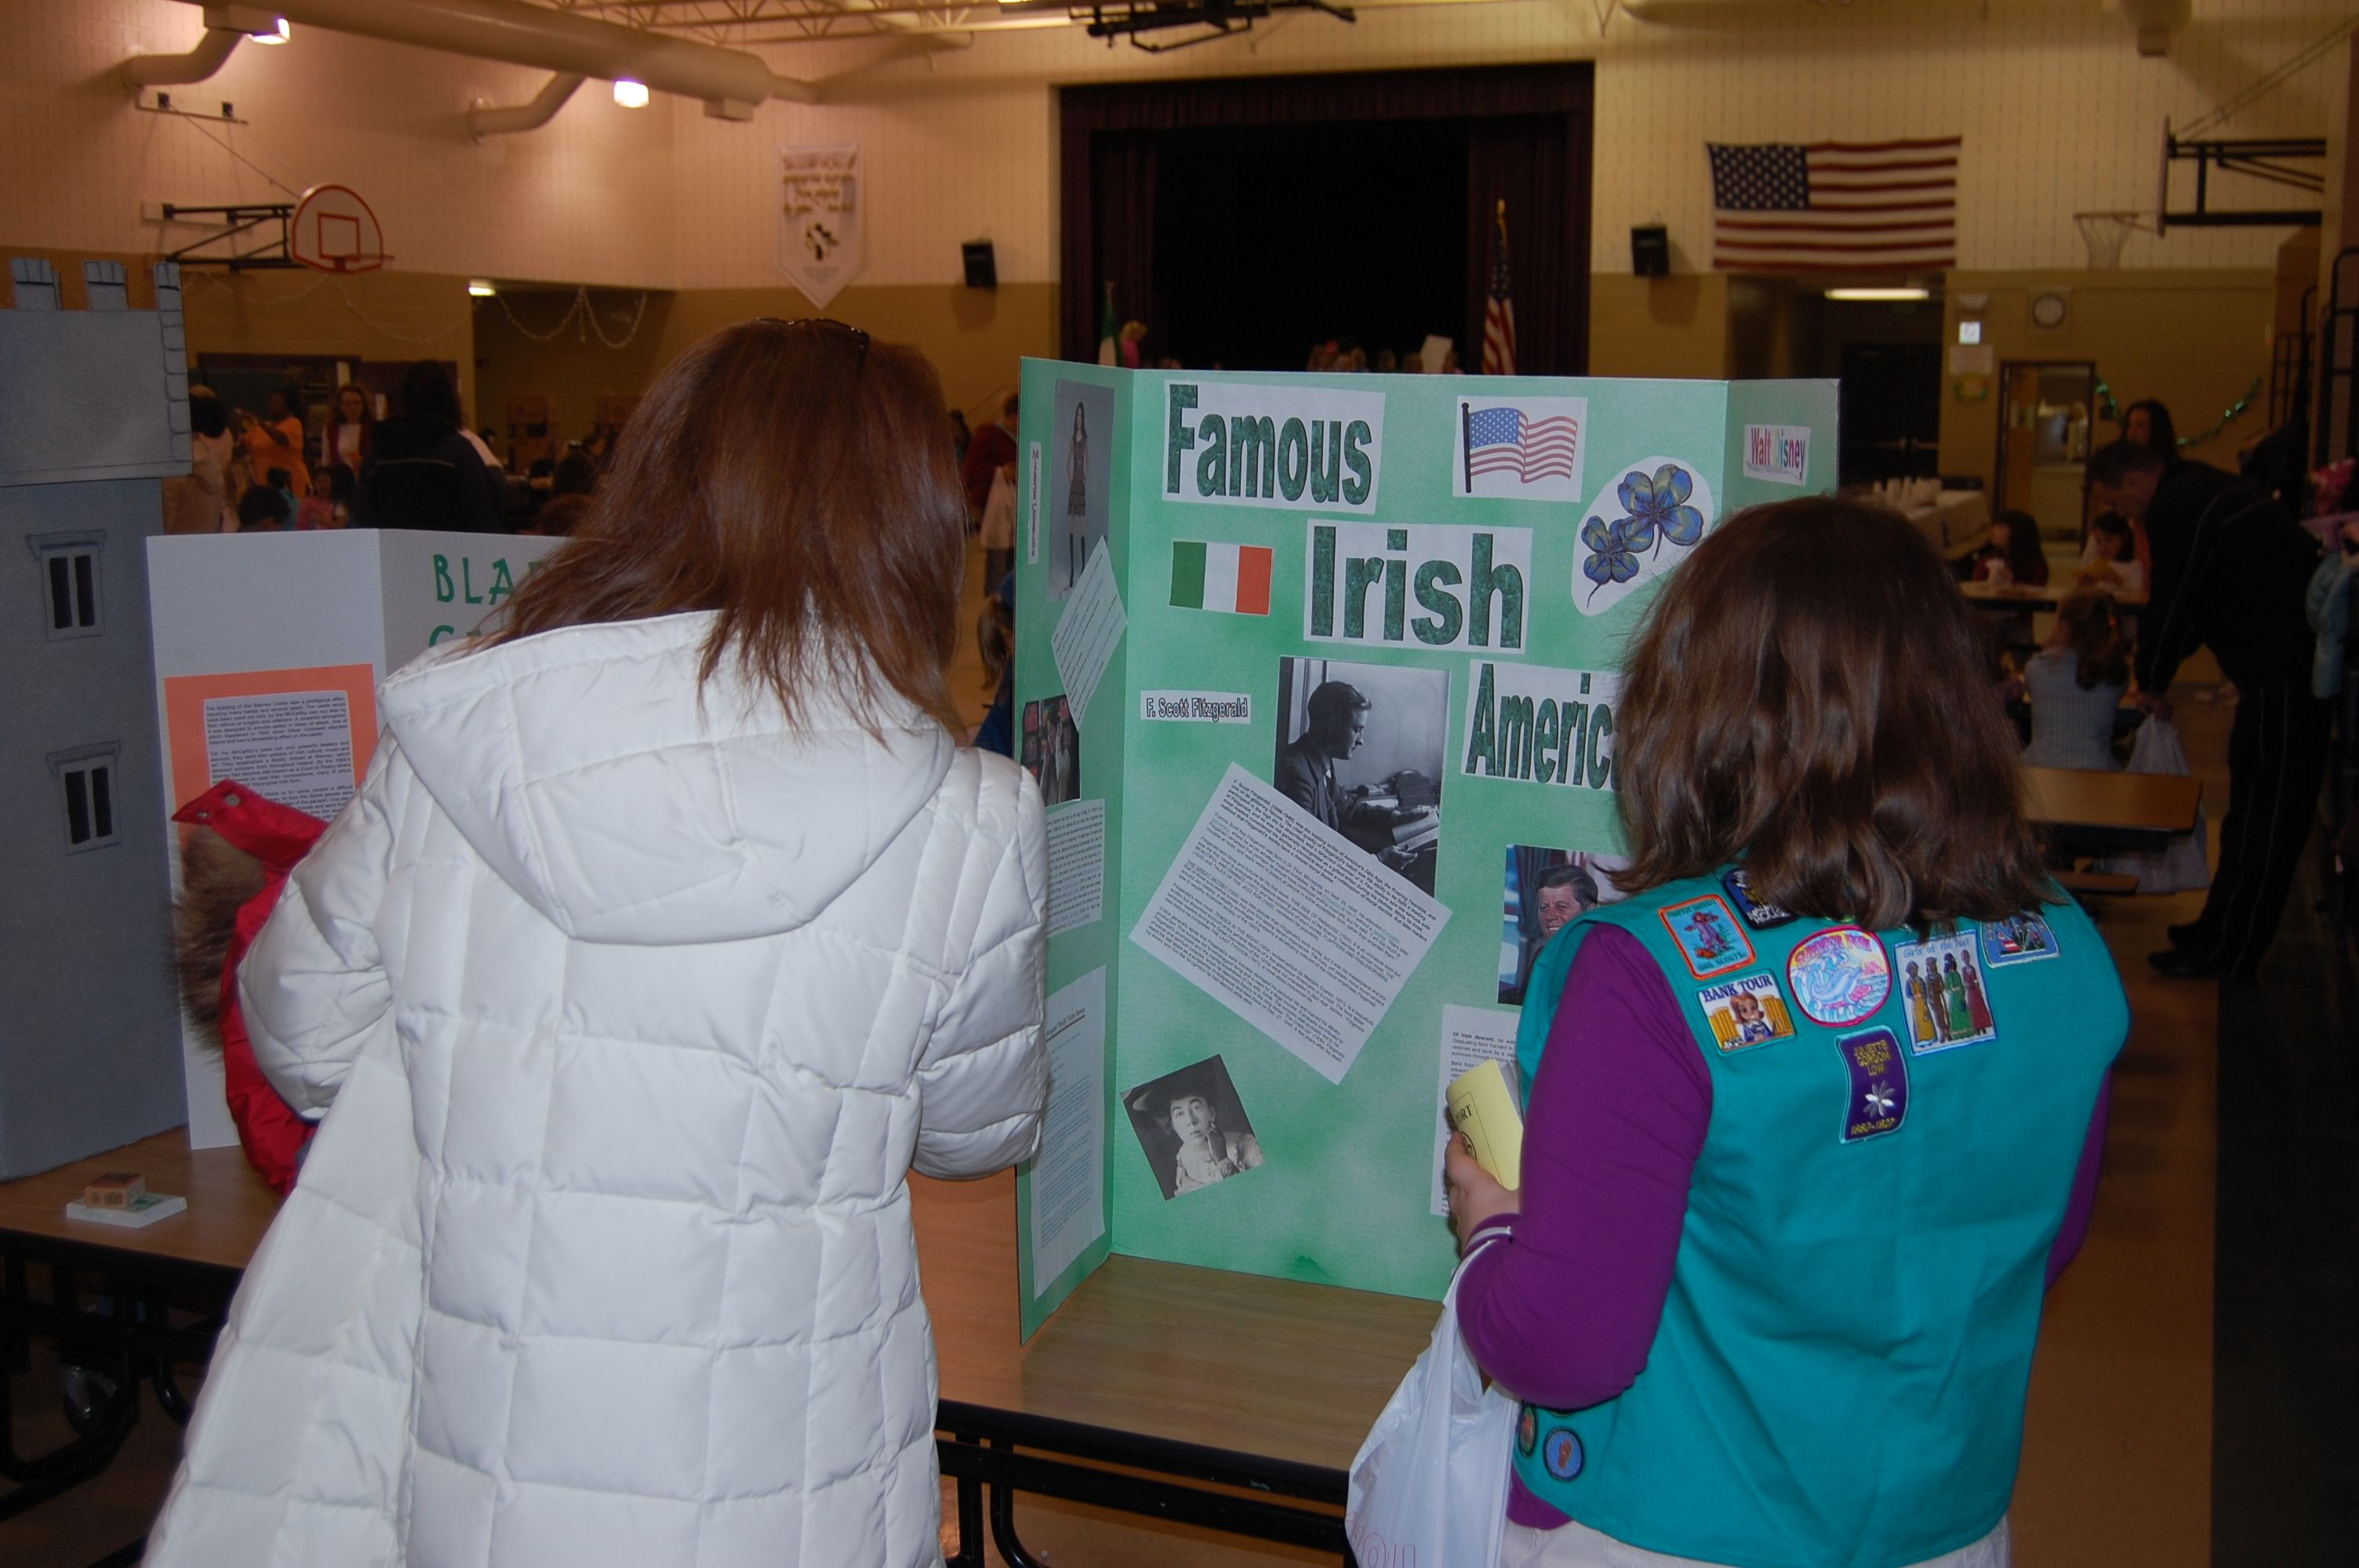 Subject Board About Famous Irish Americans